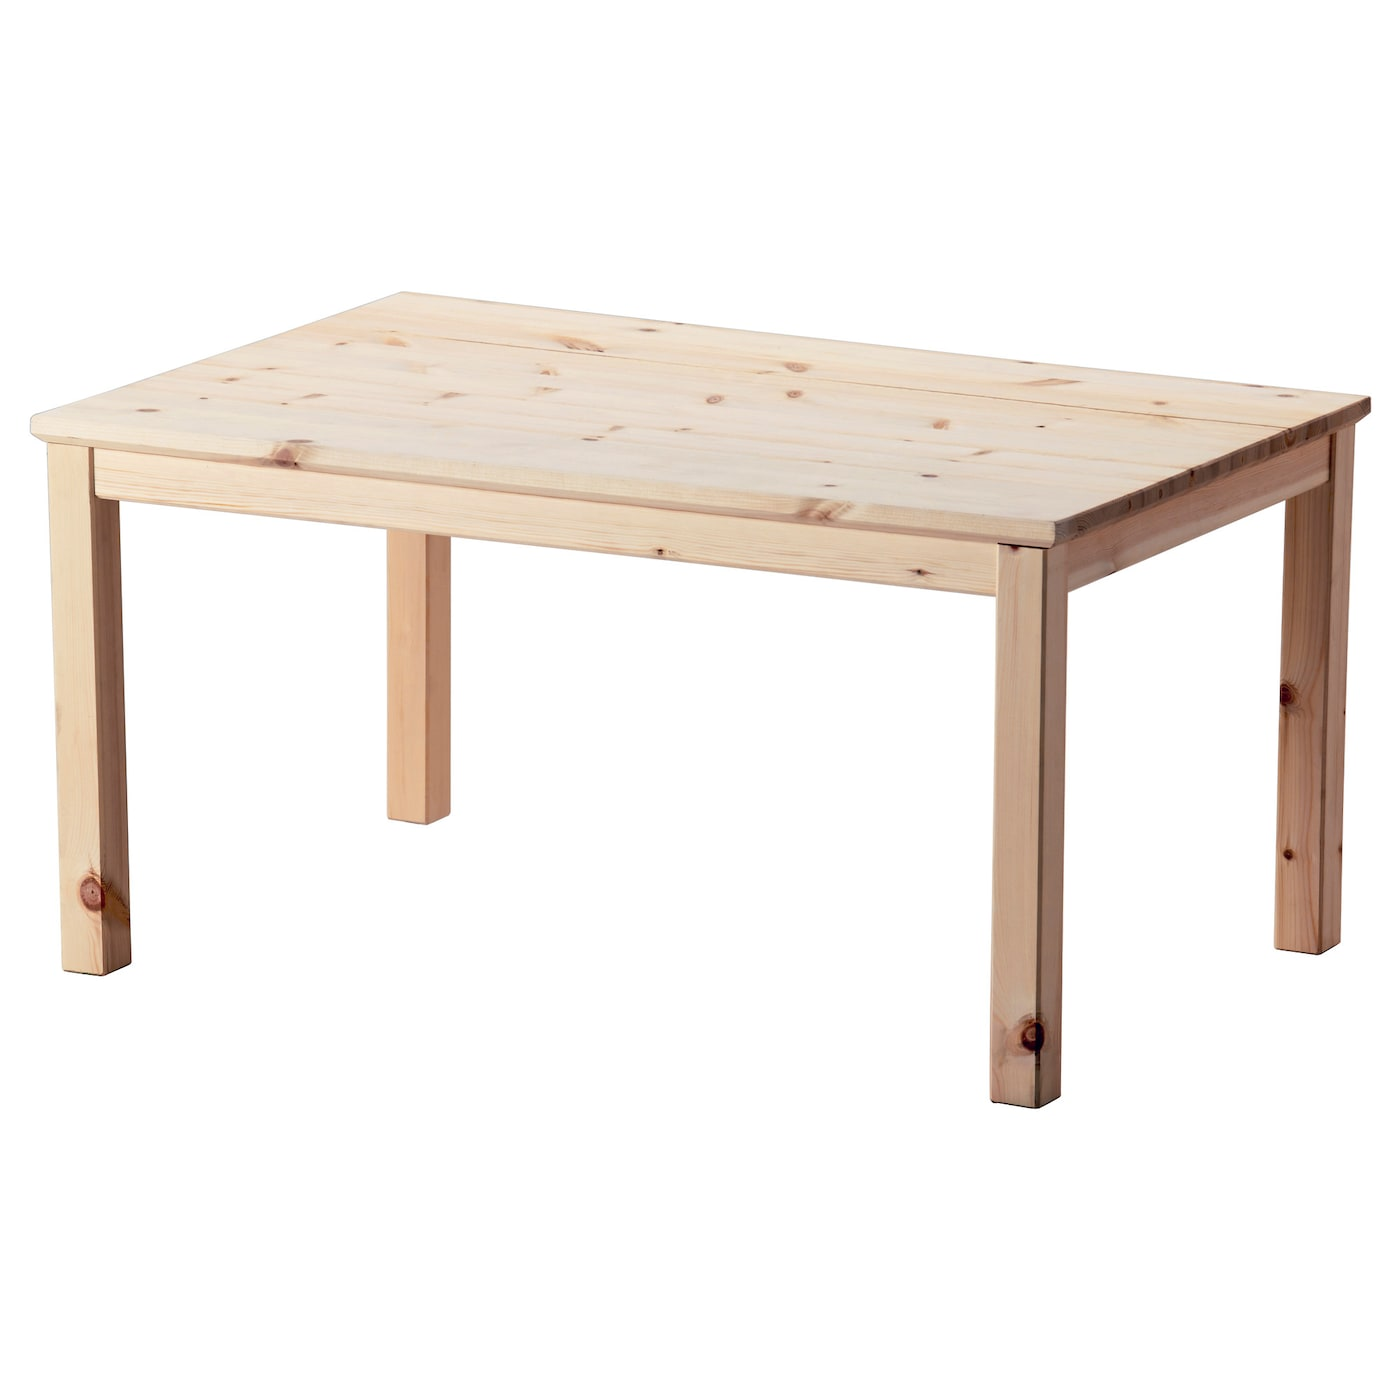 Norn s coffee table pine 89x59 cm ikea for Pine desk ikea